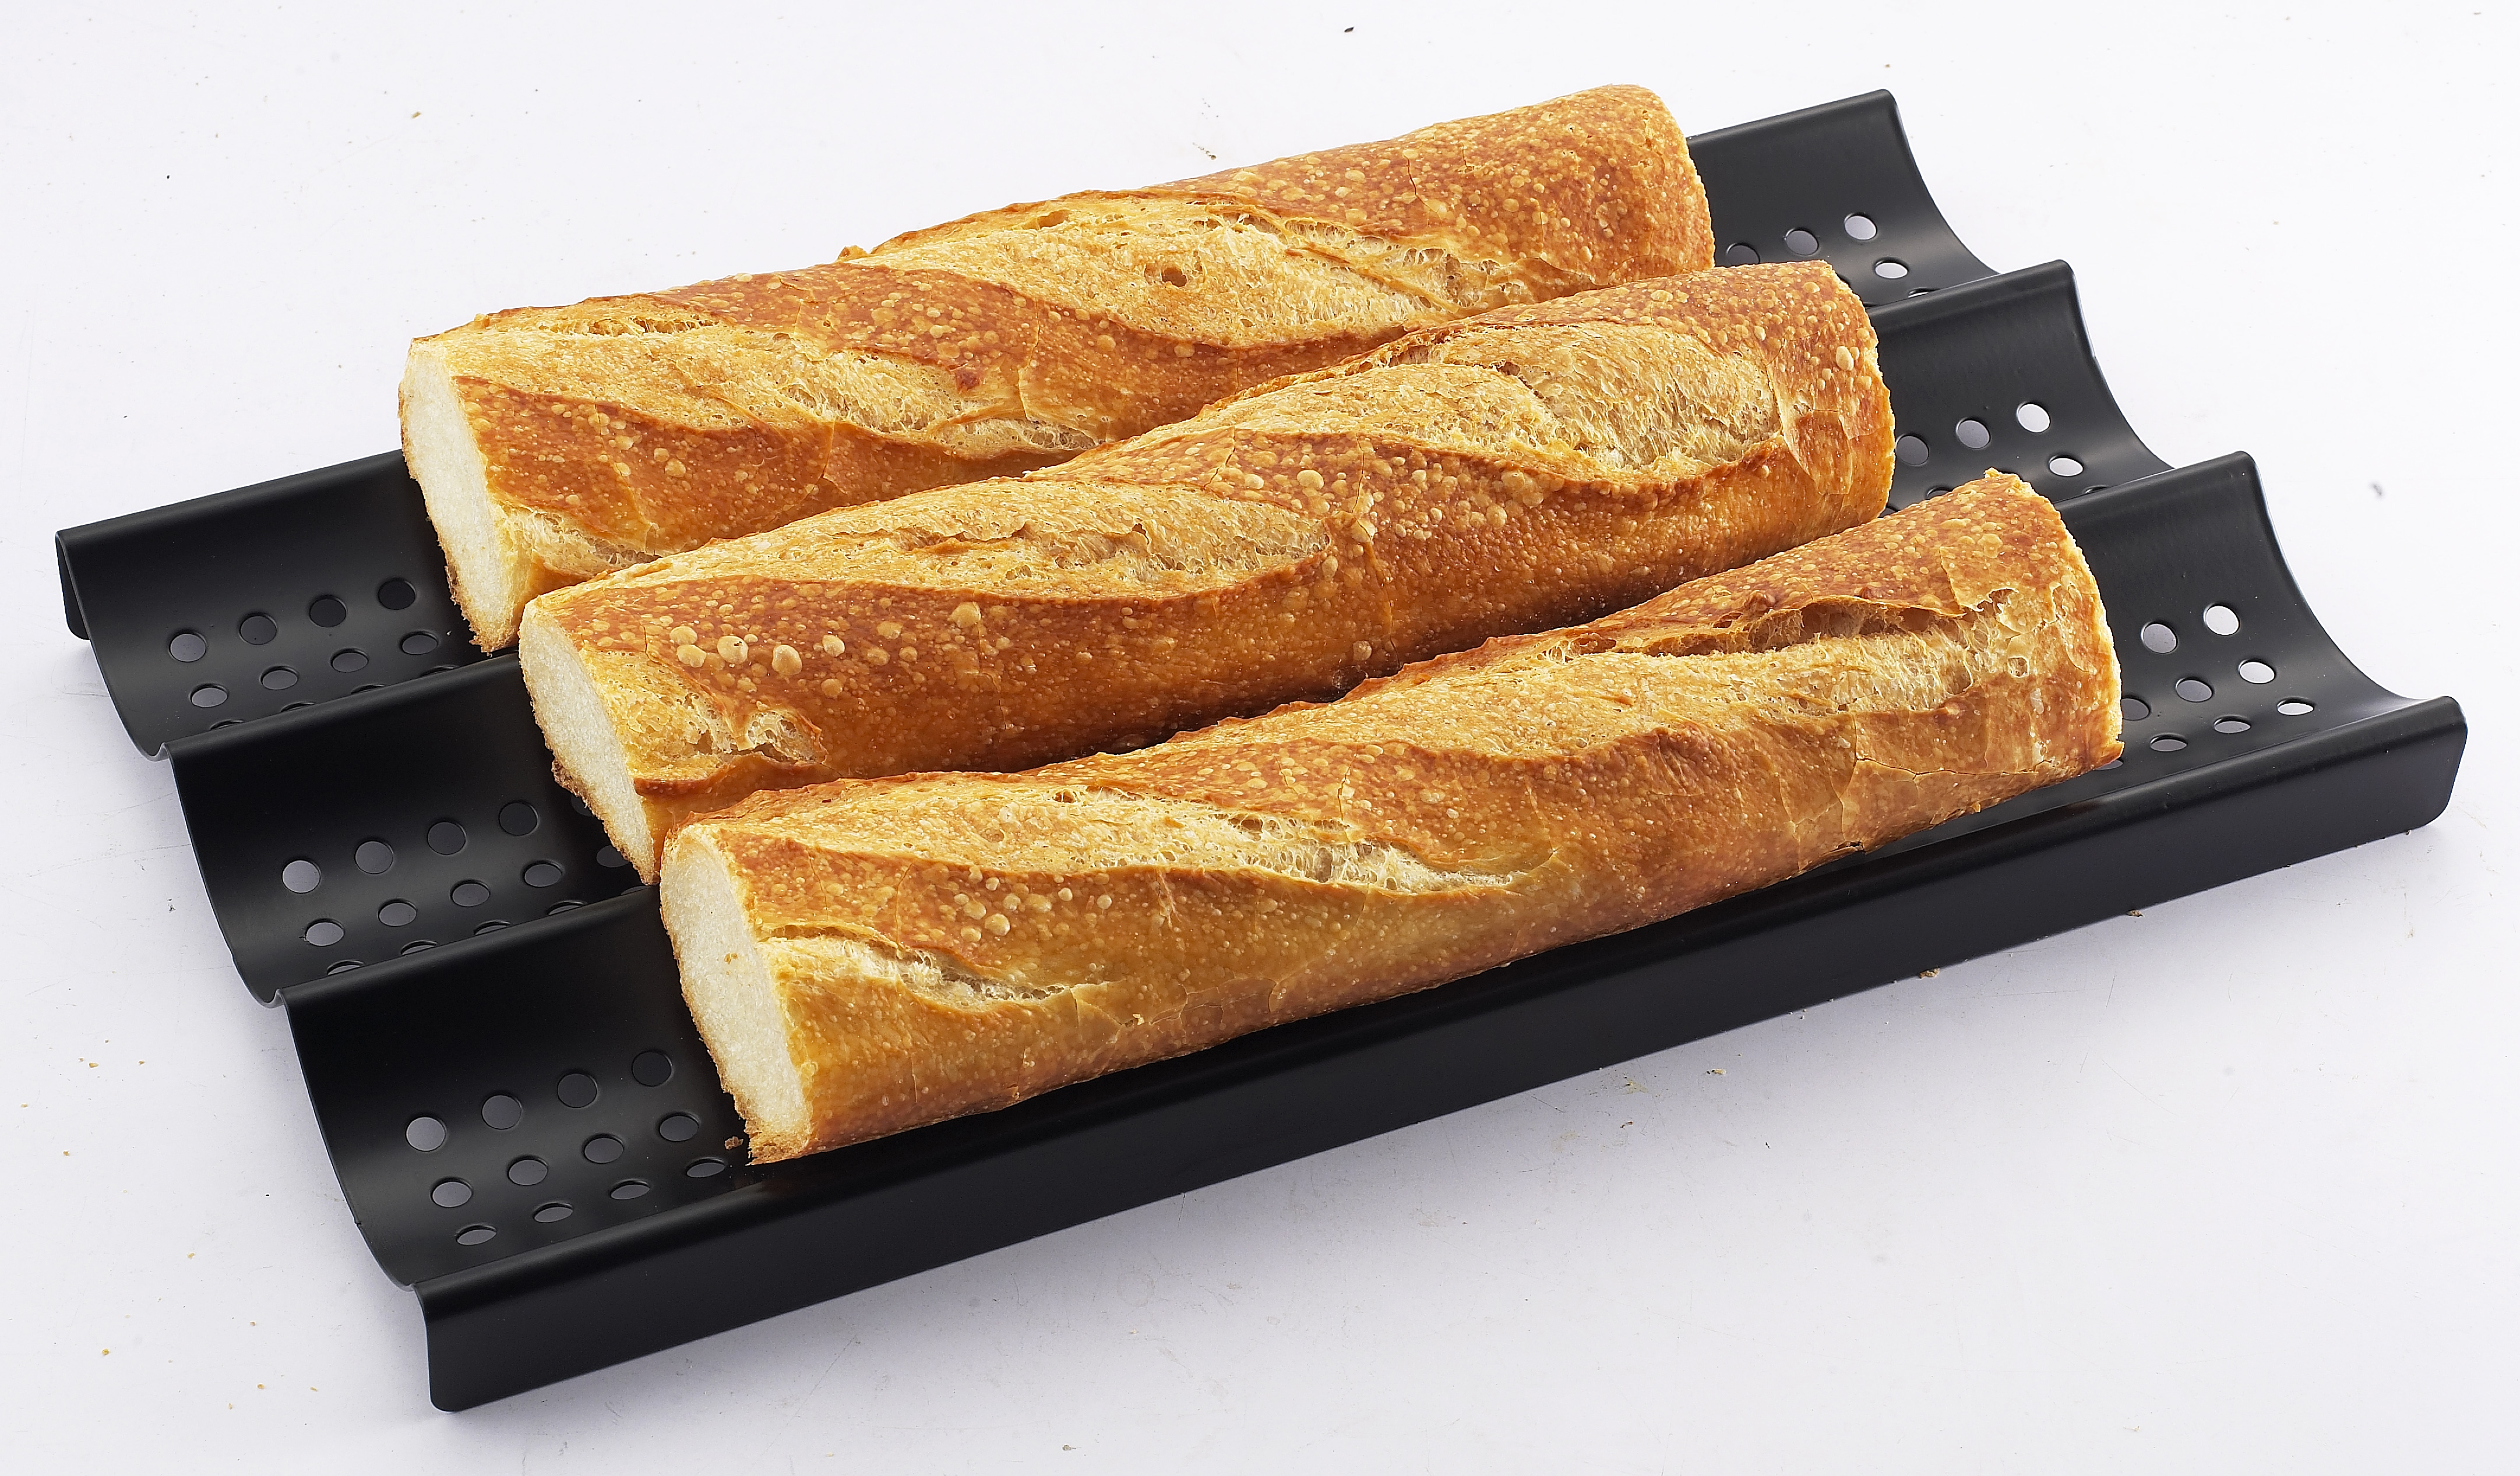 ZenUrban 870002 3-Loaf Perforated Baguette French Bread Pan, Nonstick, 16 by 9-Inches